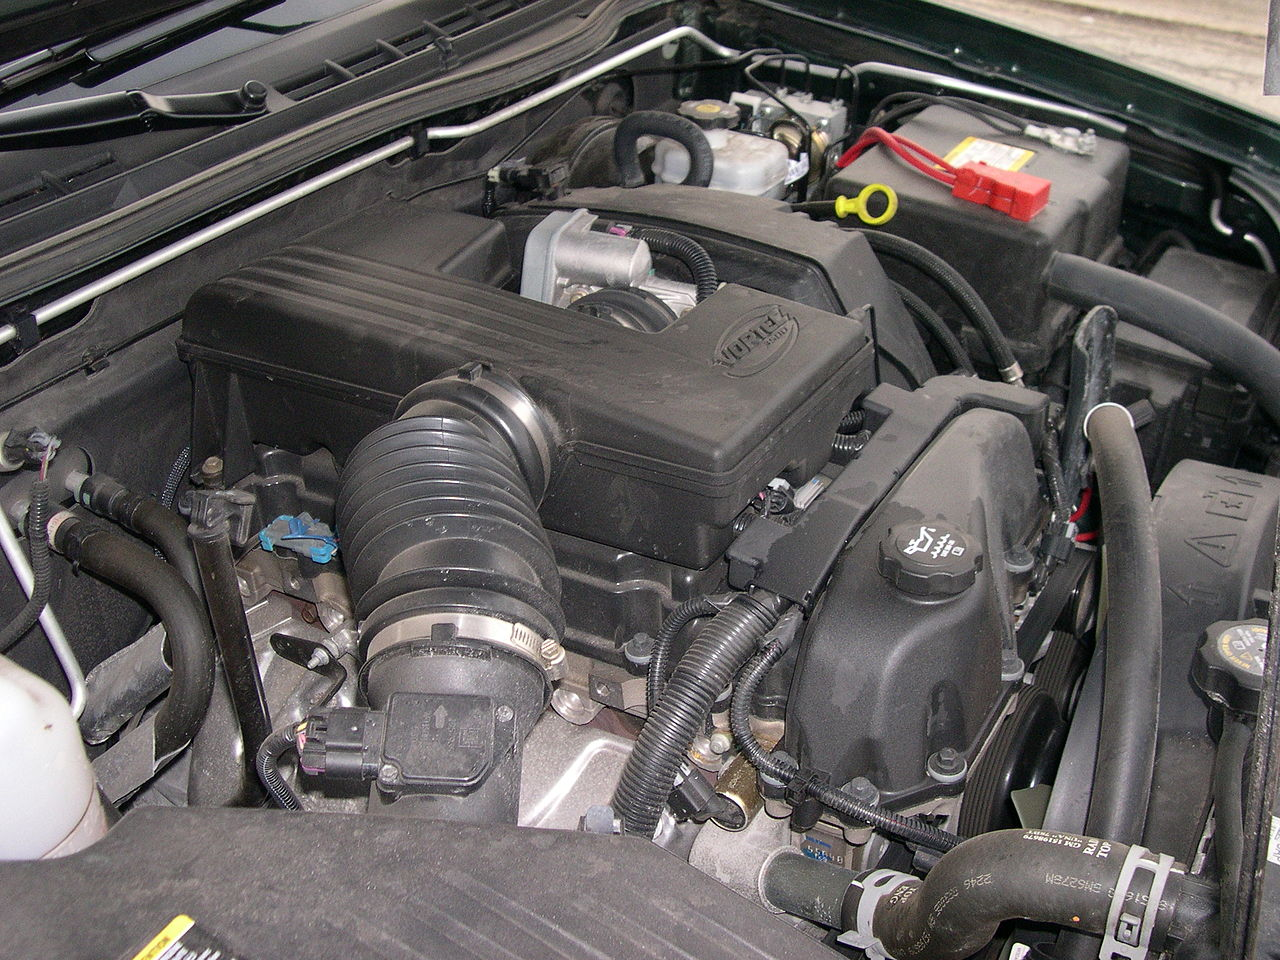 file gmc canyon vortec 3500 engine jpg file gmc canyon vortec 3500 engine jpg